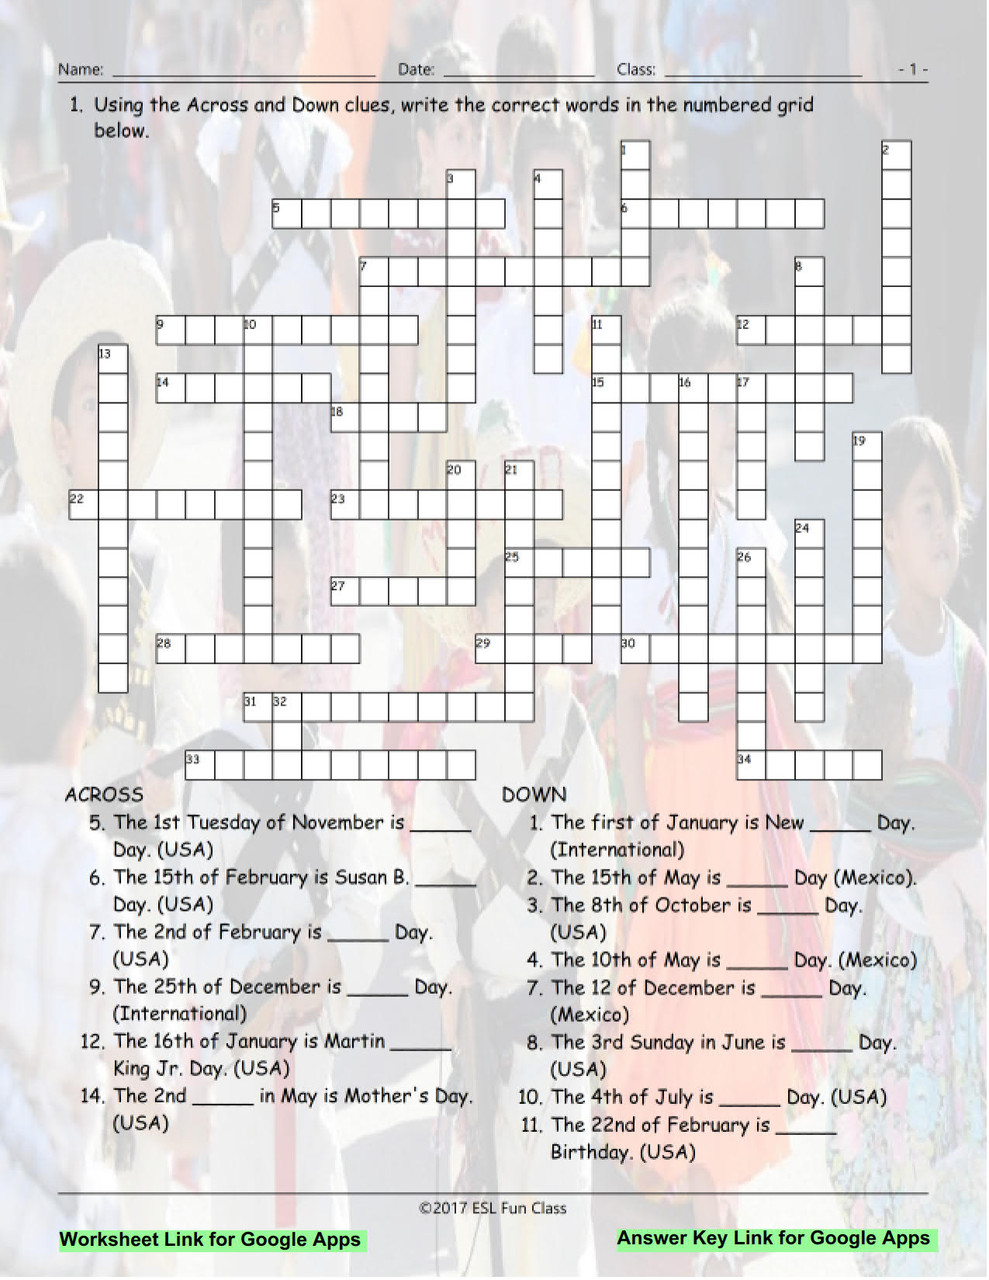 small resolution of American vs Mexican Holidays Interactive Crossword Puzzle for Google Apps  LINKS - Amped Up Learning